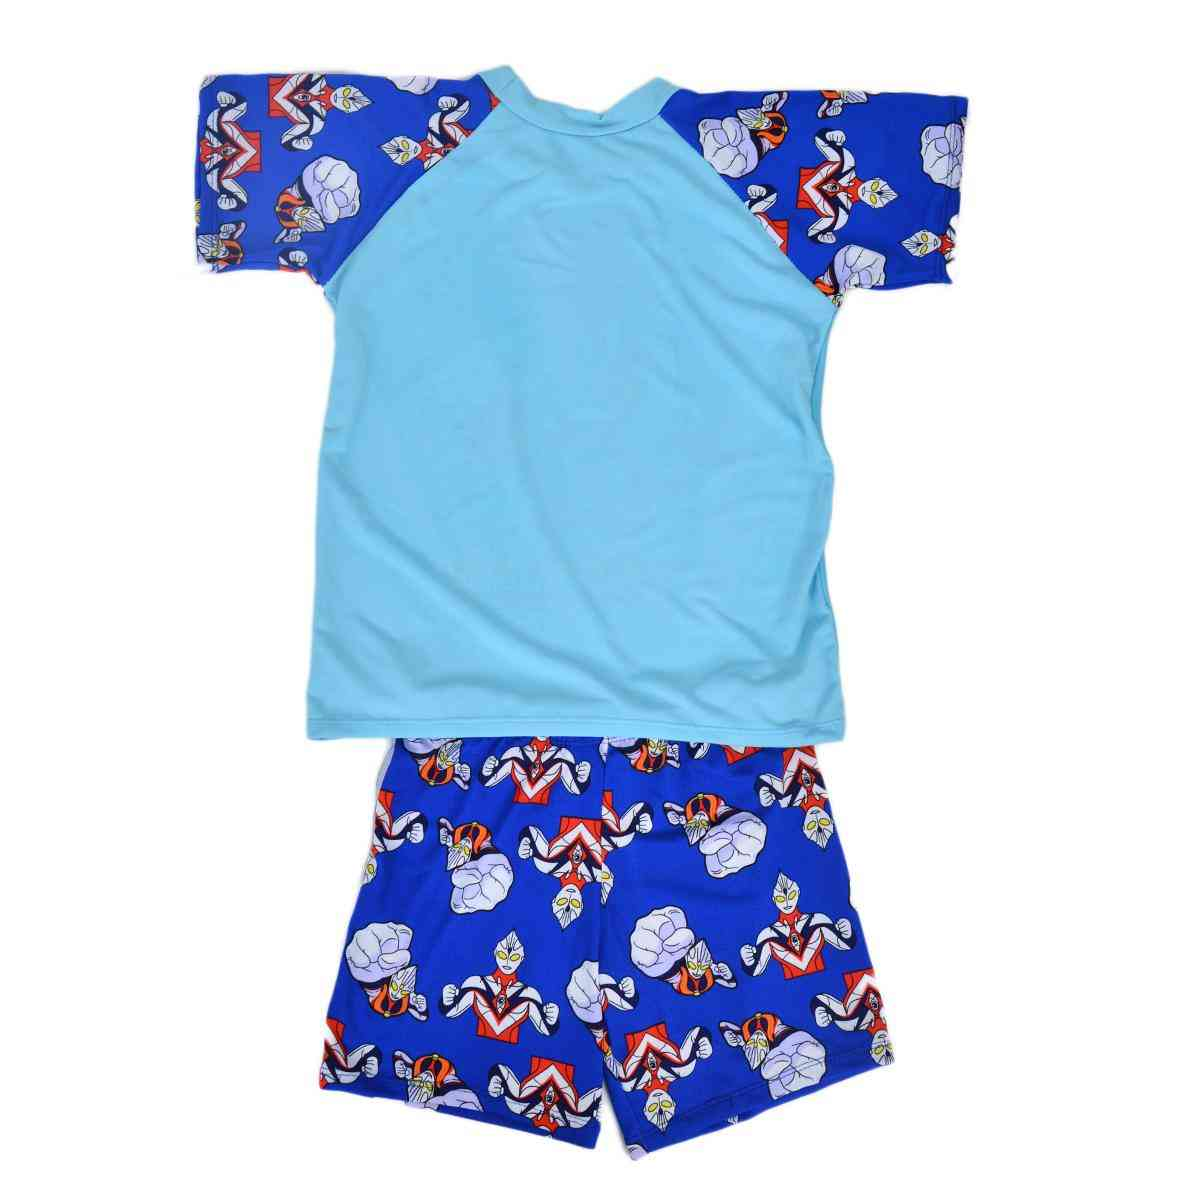 Aoteman Swimming Suit for Boys - Blue (4 to 5 Years)